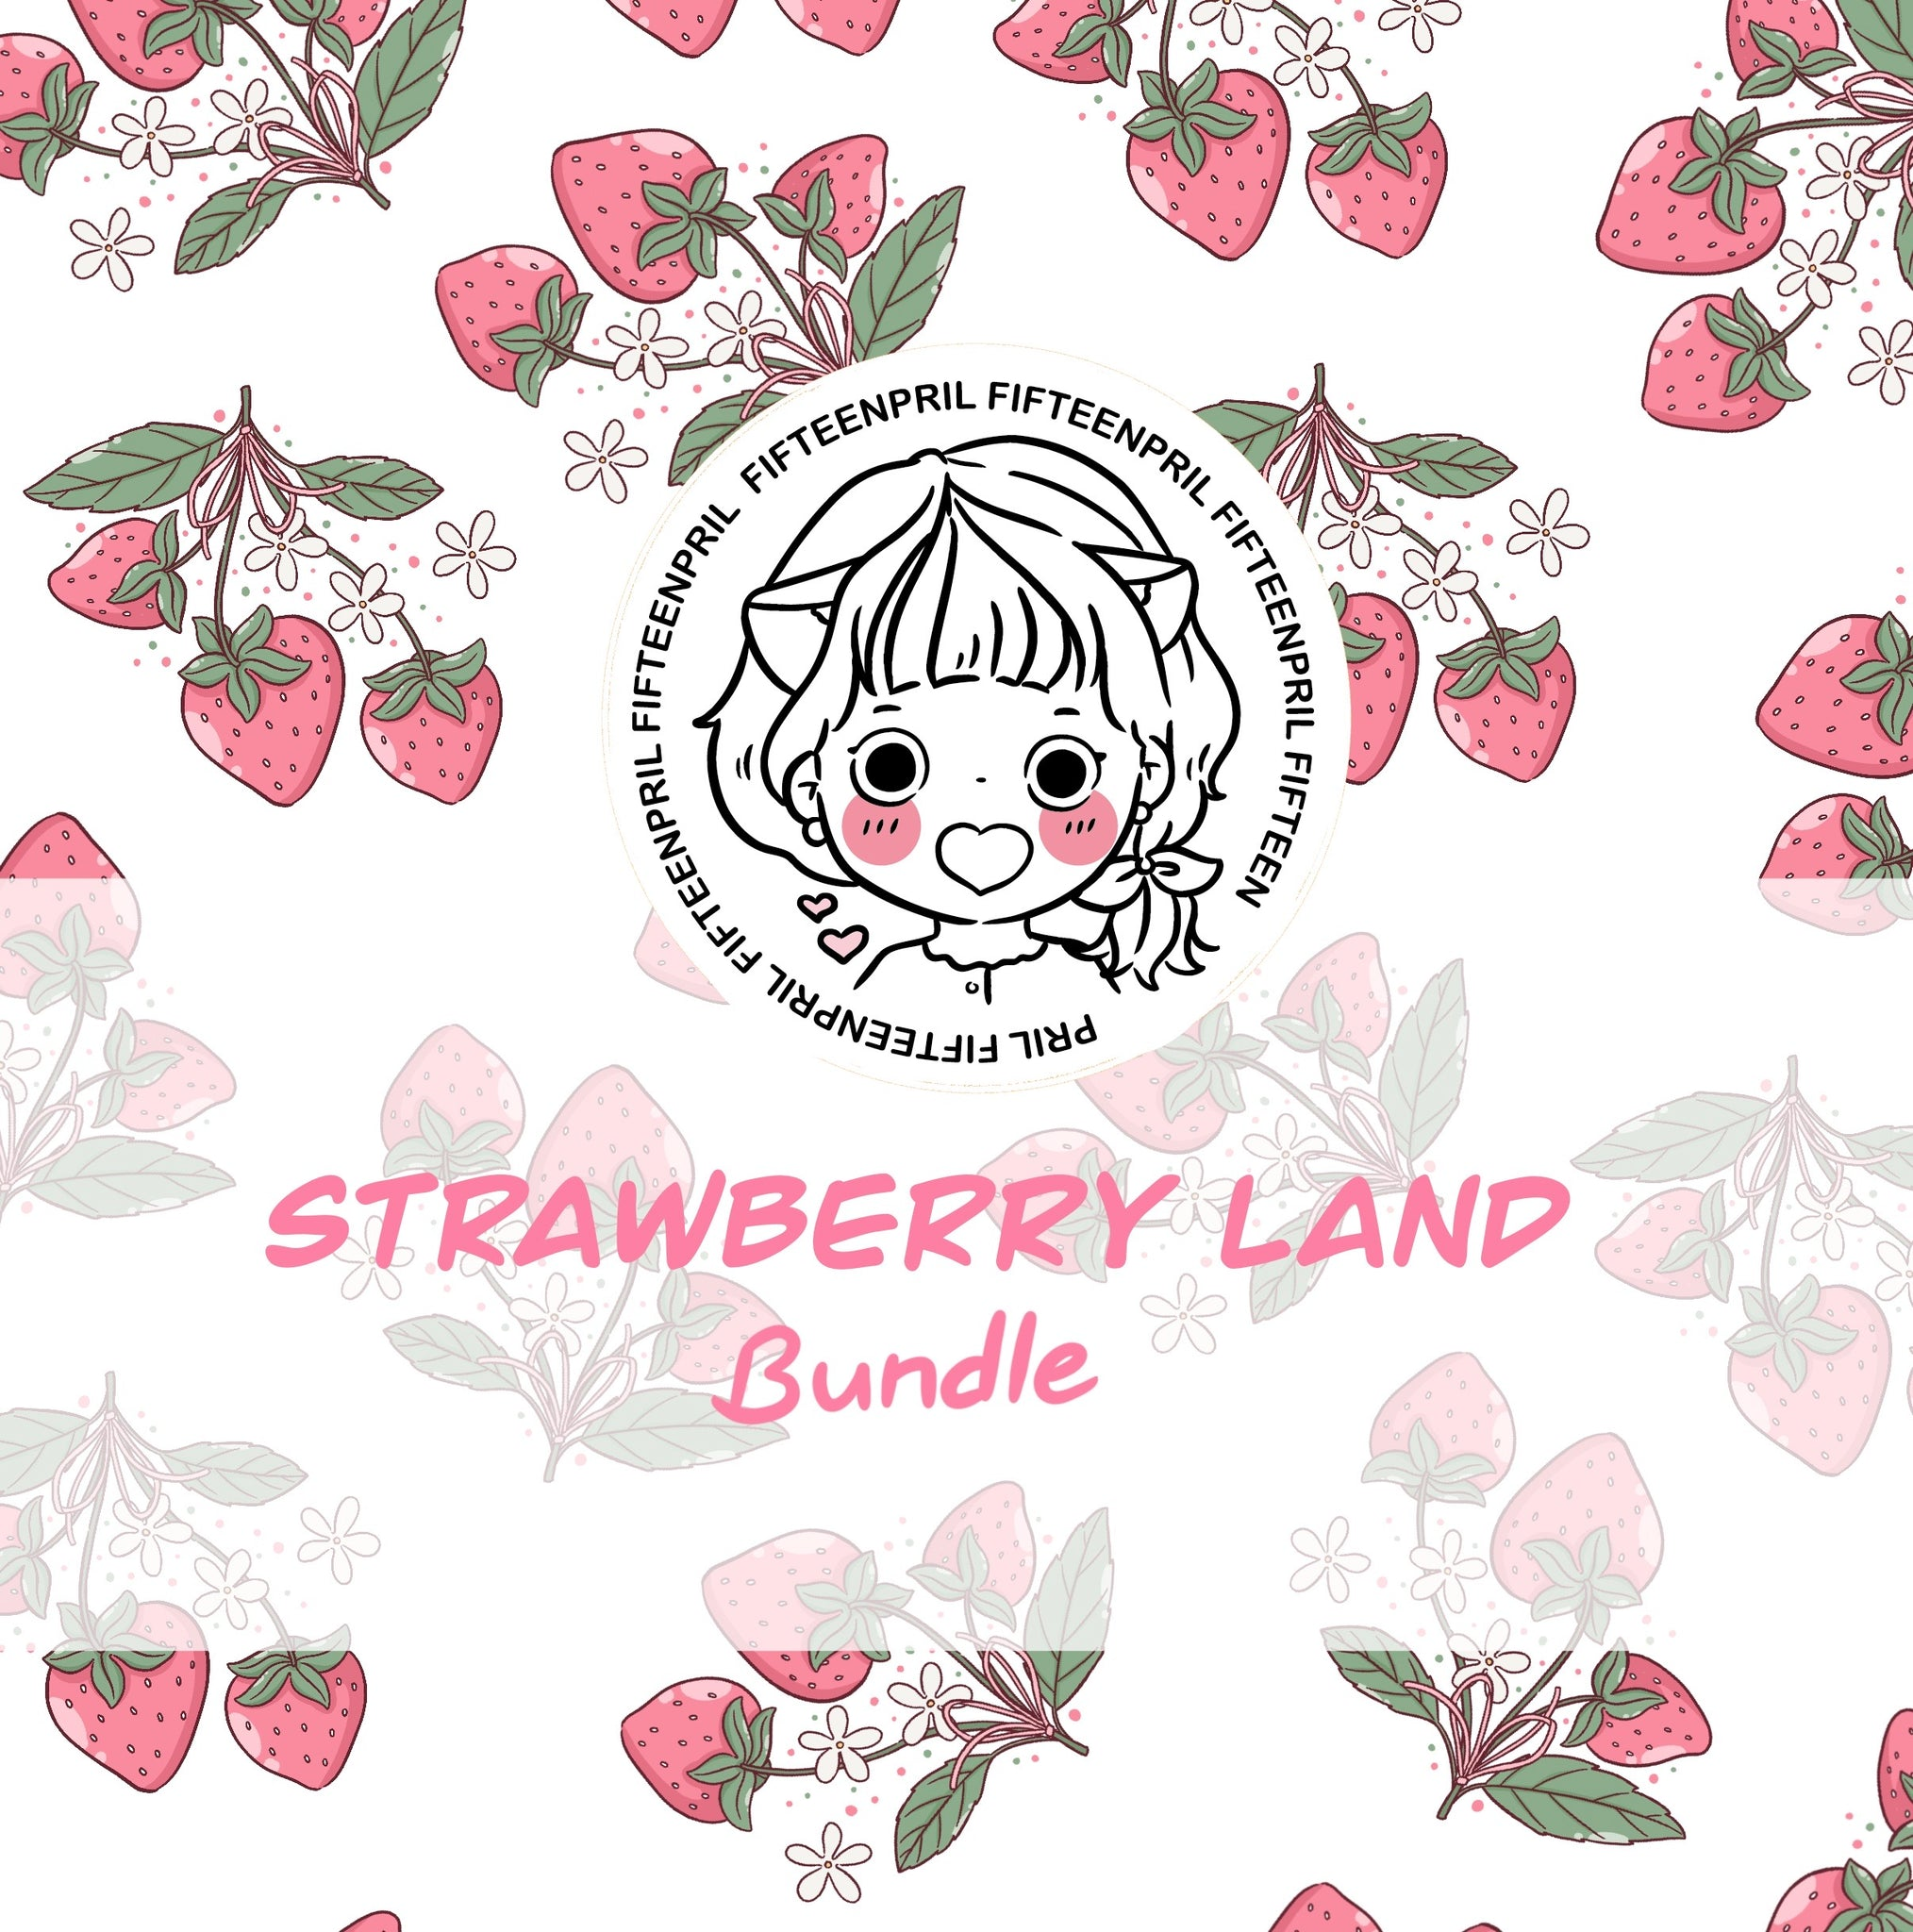 Strawberry land foxigirl Bundle🍓-more than 20% off! LIMITED Bundles only